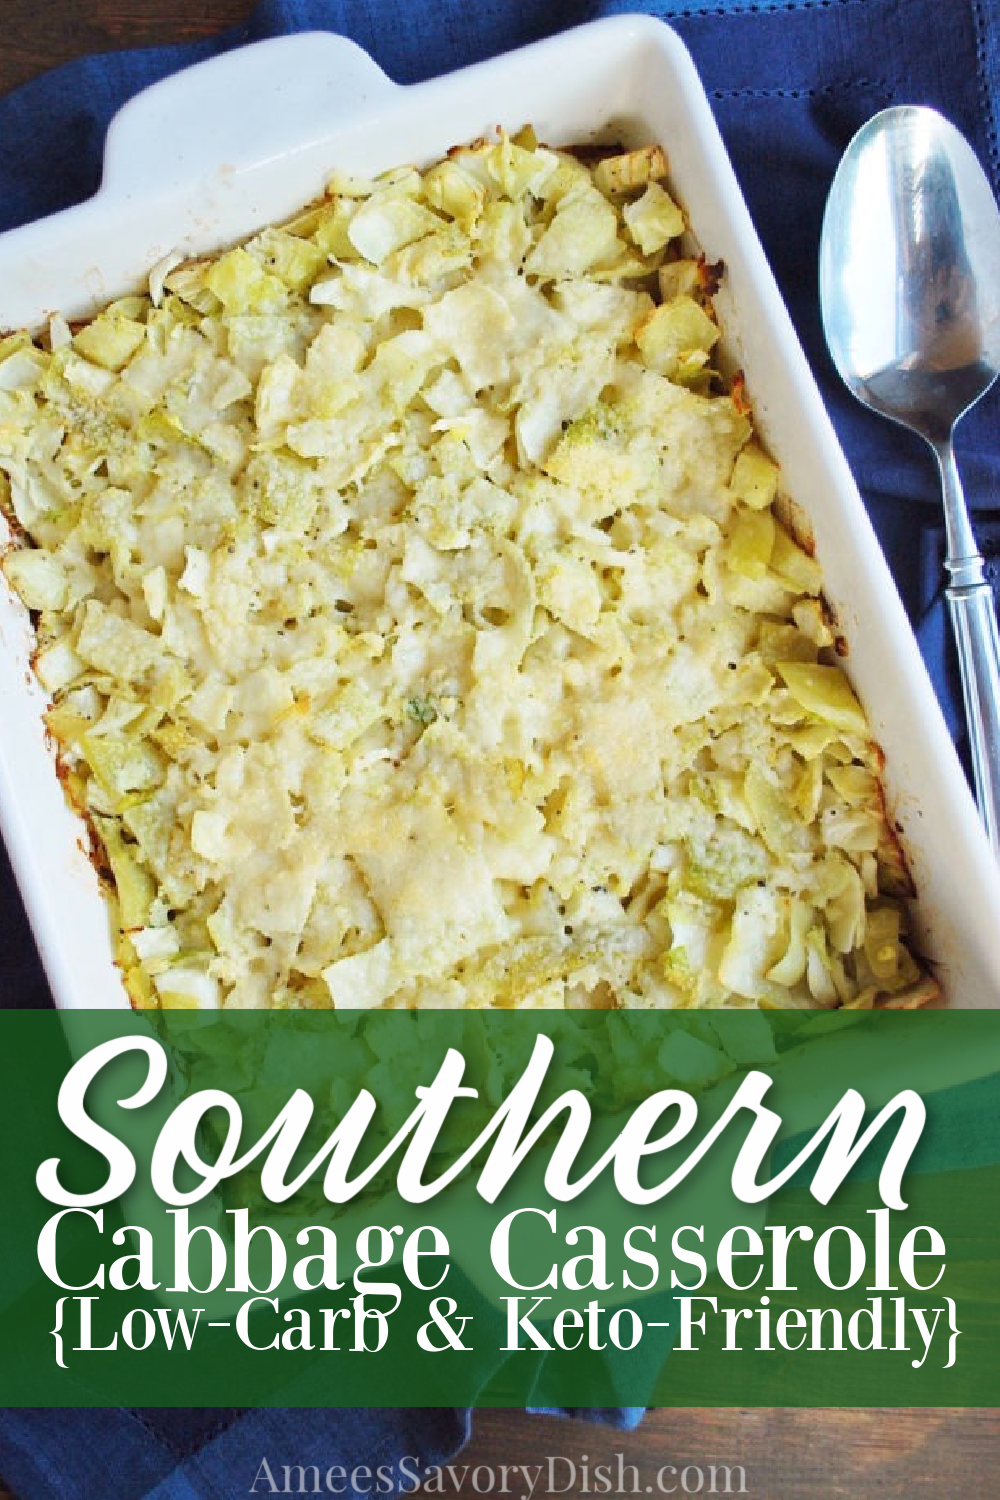 Cabbage Casserole is a vintage recipe made with fresh cabbage, eggs, butter, and cream. The recipe originated from my great grandmother's cookbook published in the 1800s. #ketocasserole #ketosidedish #ketorecipe via @Ameessavorydish